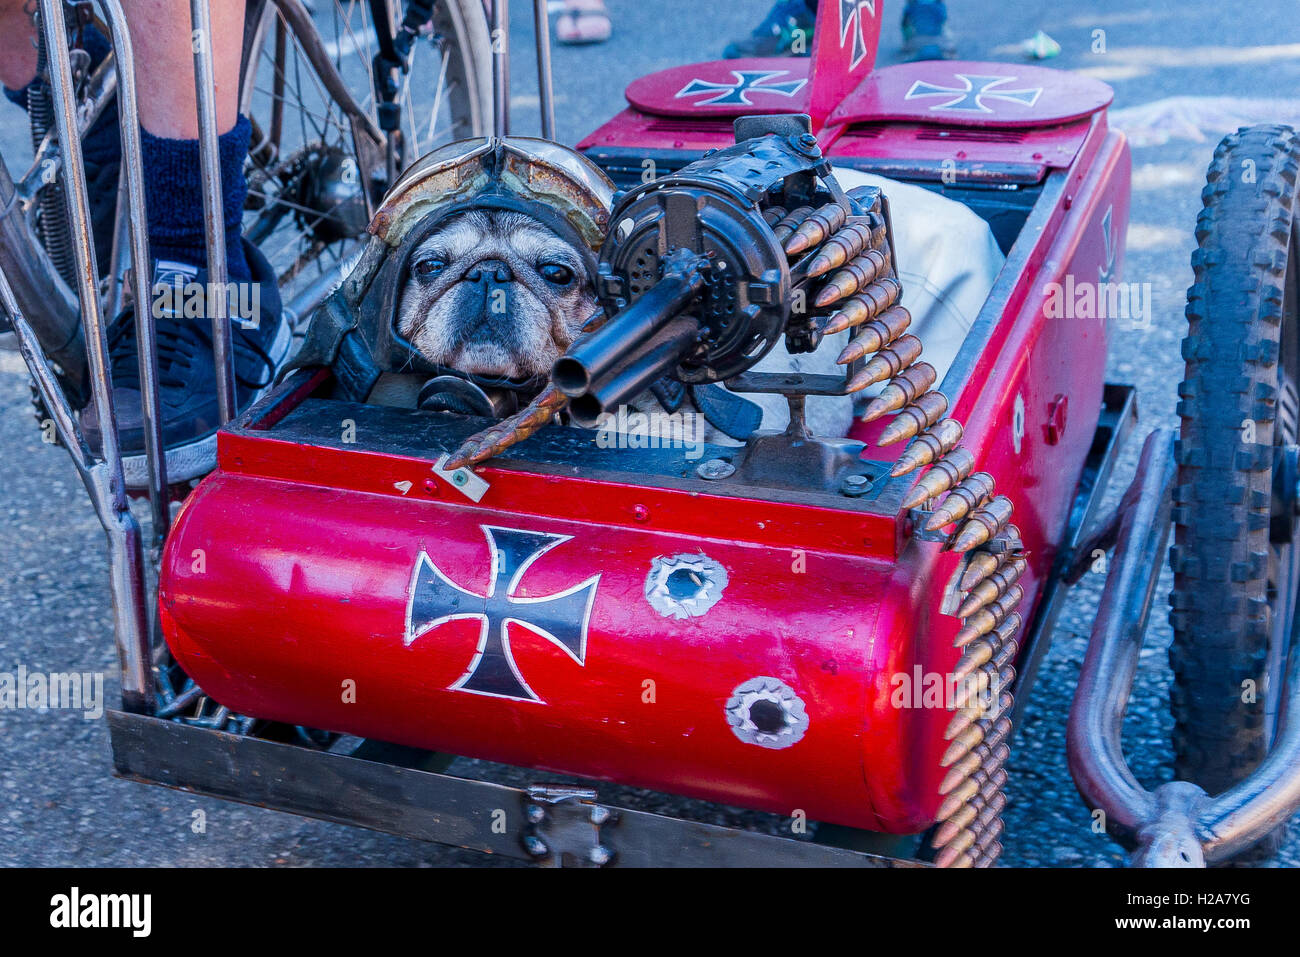 Multi-media artist Mad Dog's  punk bicycle  sidecar with machine gun and helmetted dog, Vancouver, British Columbia, - Stock Image